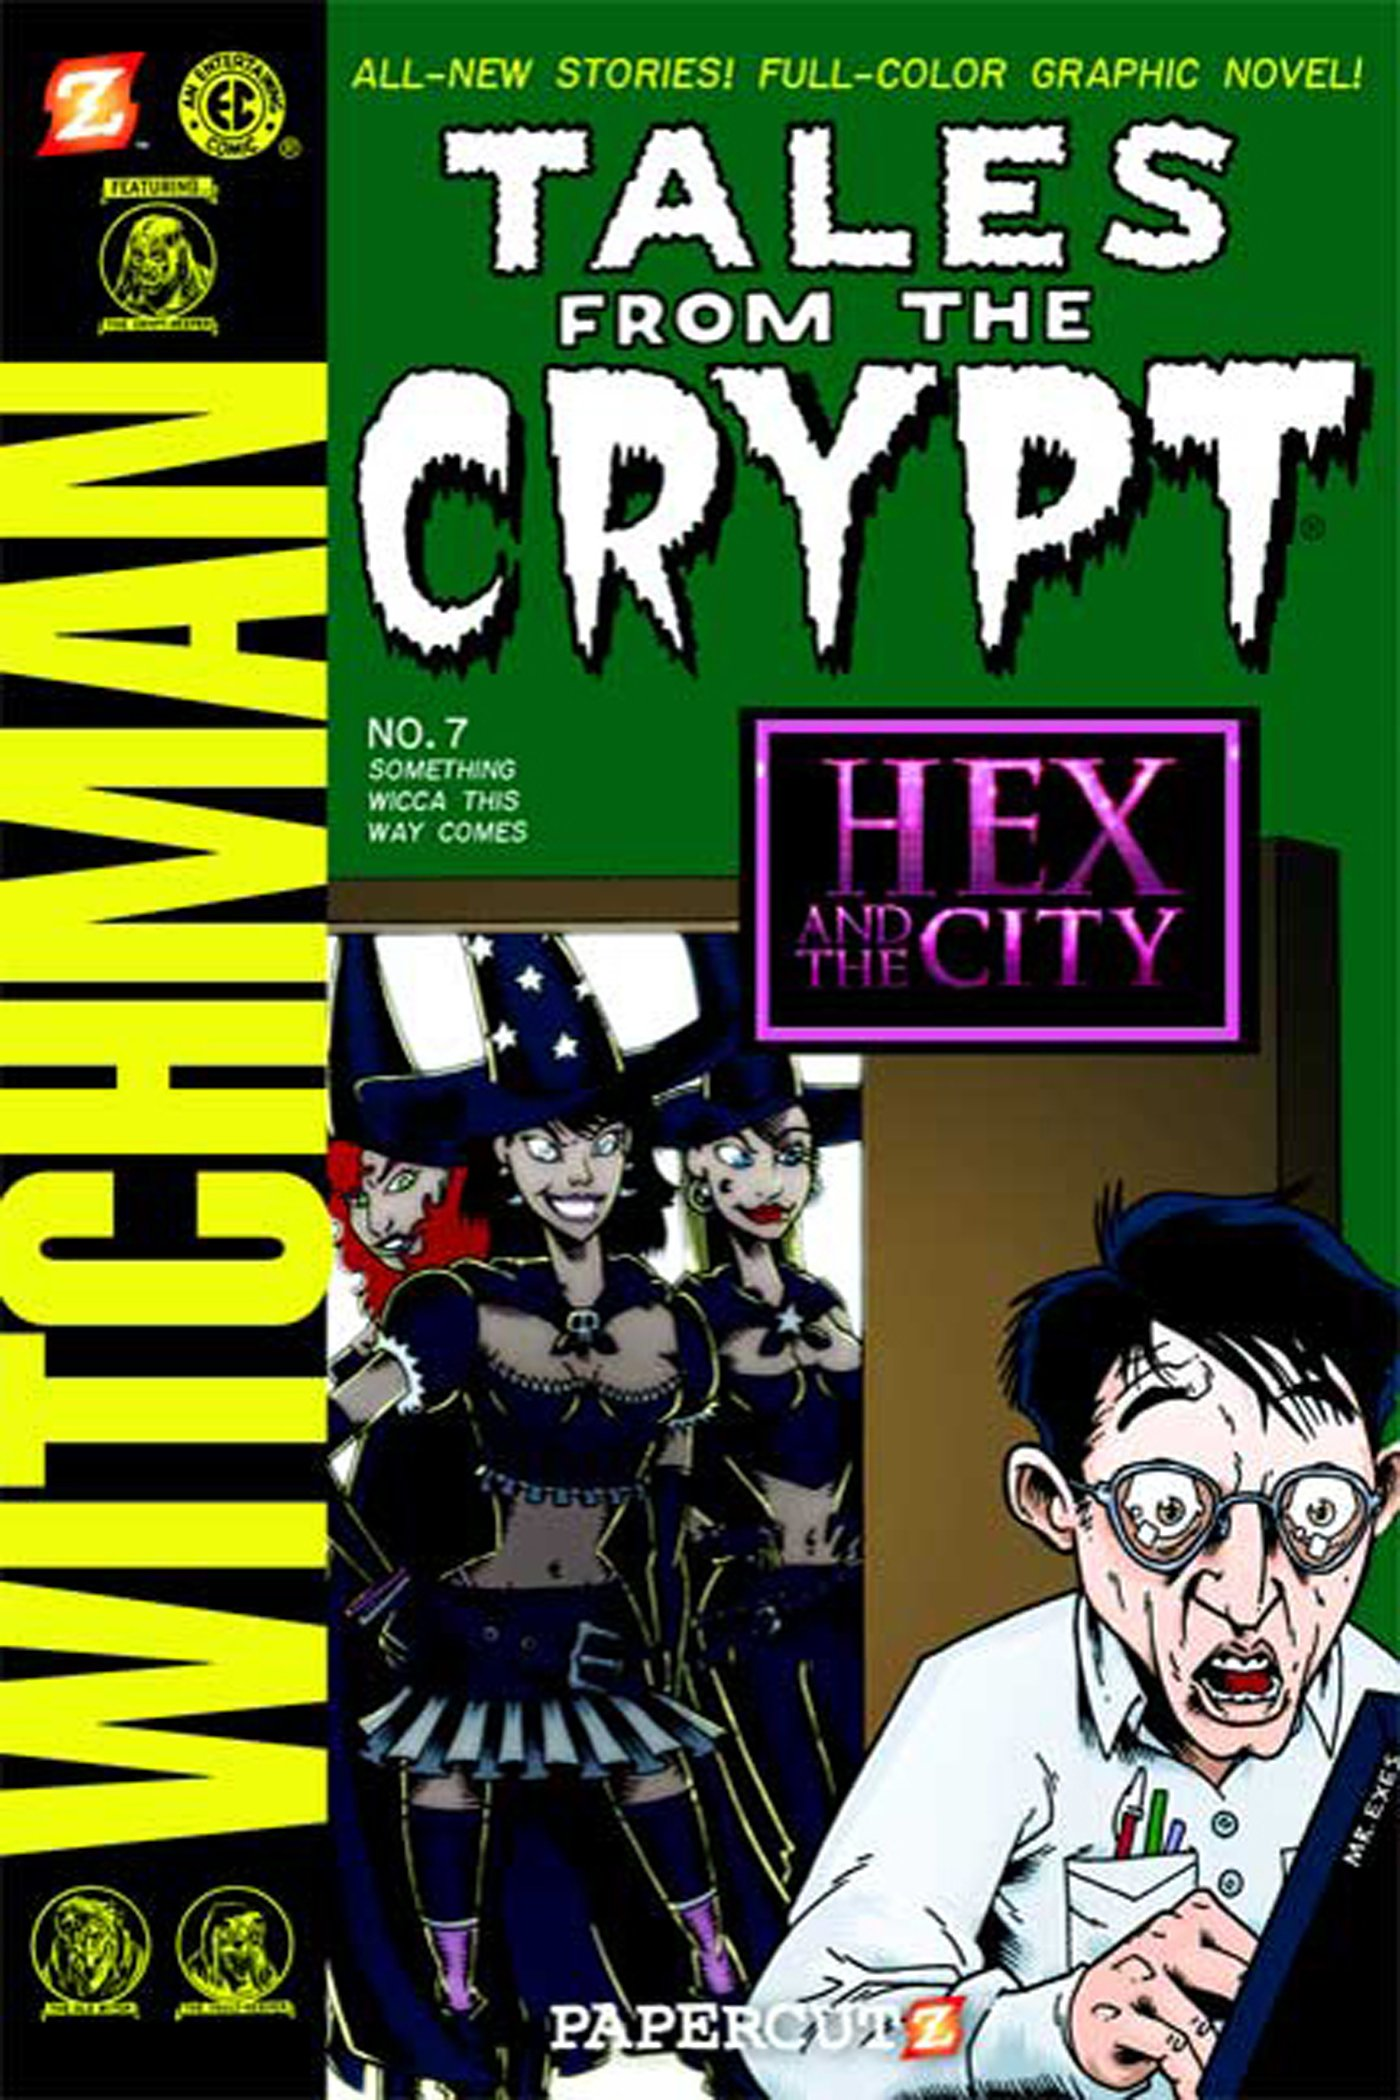 Read Online Tales from the Crypt #7: Something Wicca This Way Comes (Tales from the Crypt Graphic Novels) PDF